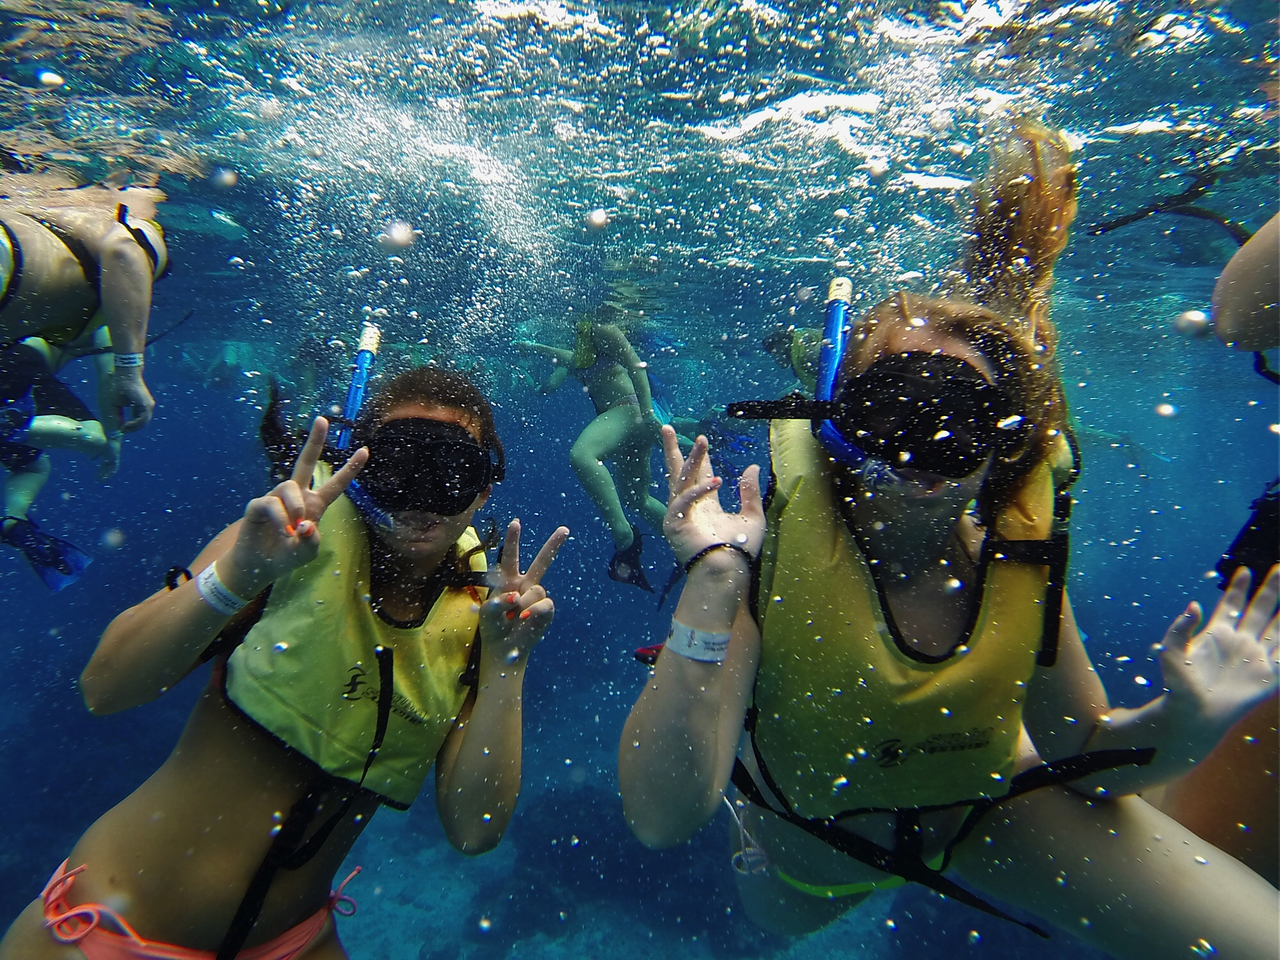 adventure, beautiful, blue, bubbles, cold, cozumel, dive, explore, flippers, friends, goggles, gopro, mexico, ocean, outdoors, scuba, sea, snorkel, snorkeling, sun, swim, swimming, underwater, vest, warm, water, white, yellow, scuba dive, ​bestfriend